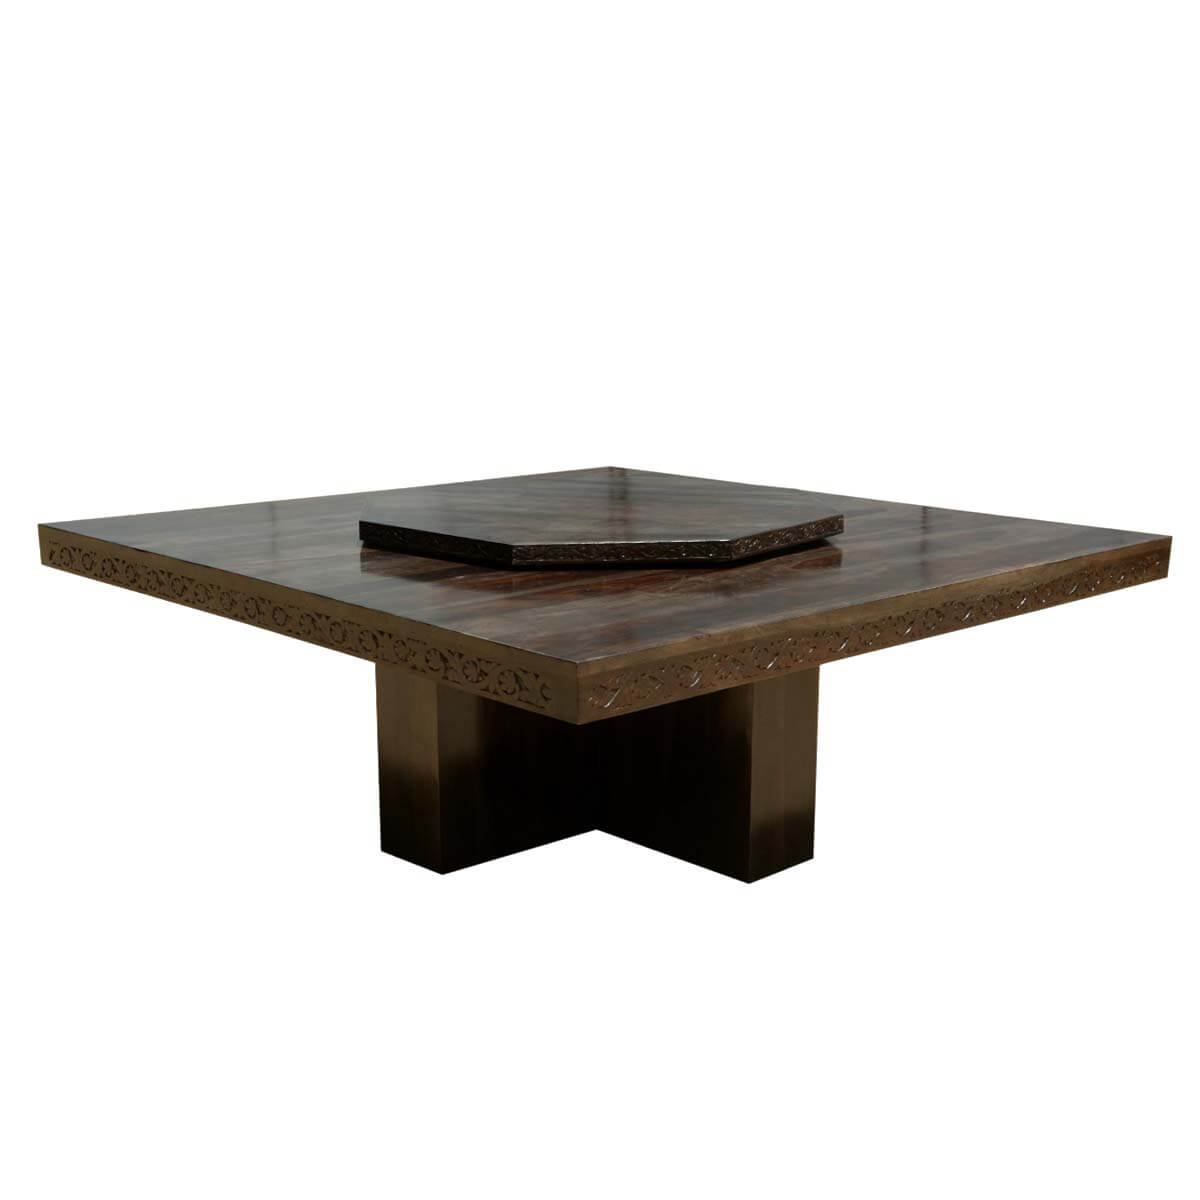 square contemporary solid wood pedestal dining table w lazy susan. Black Bedroom Furniture Sets. Home Design Ideas